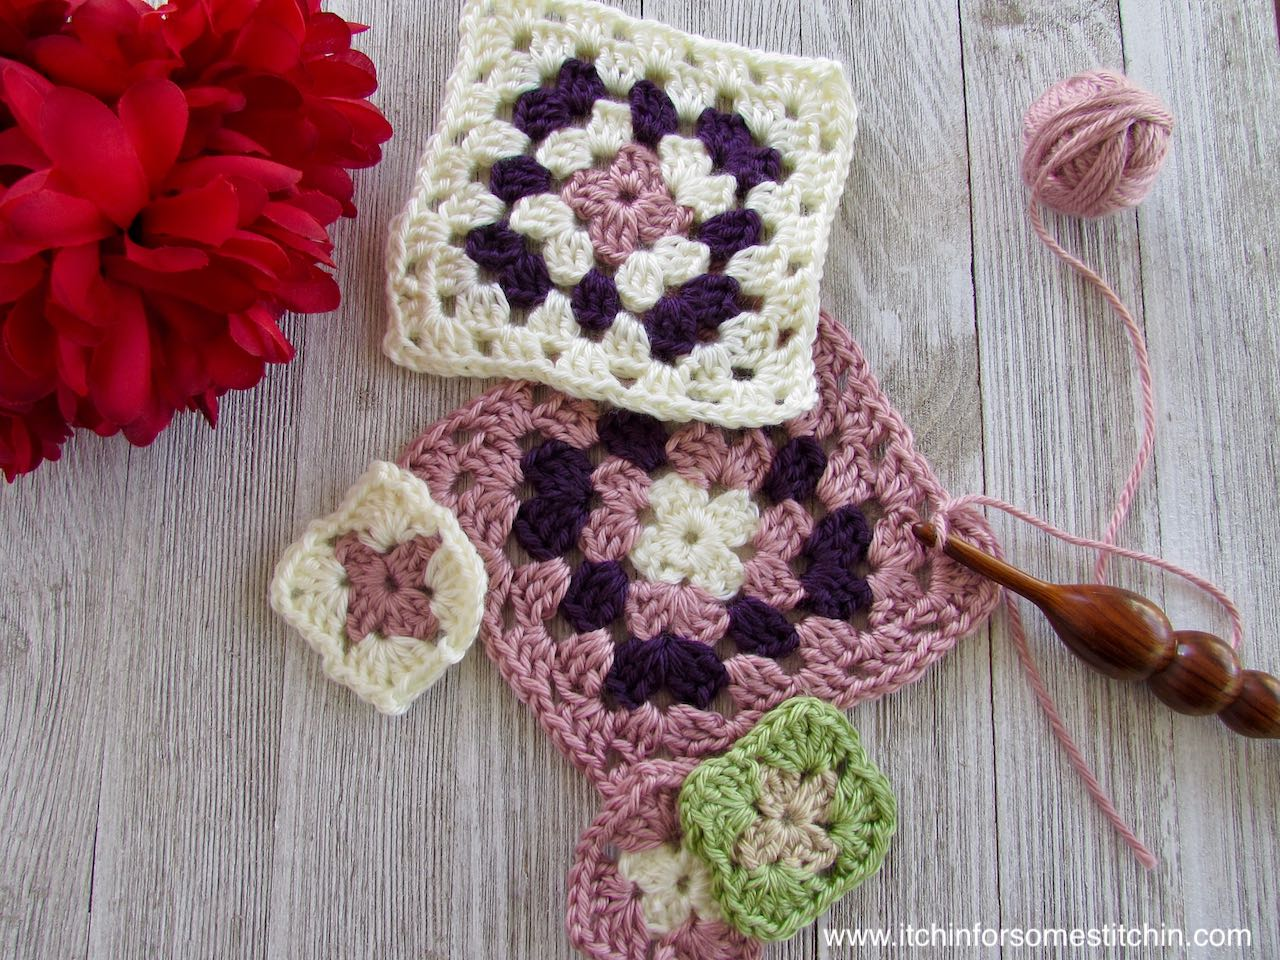 How to Crochet a granny square by itchinforsomestitchin.com